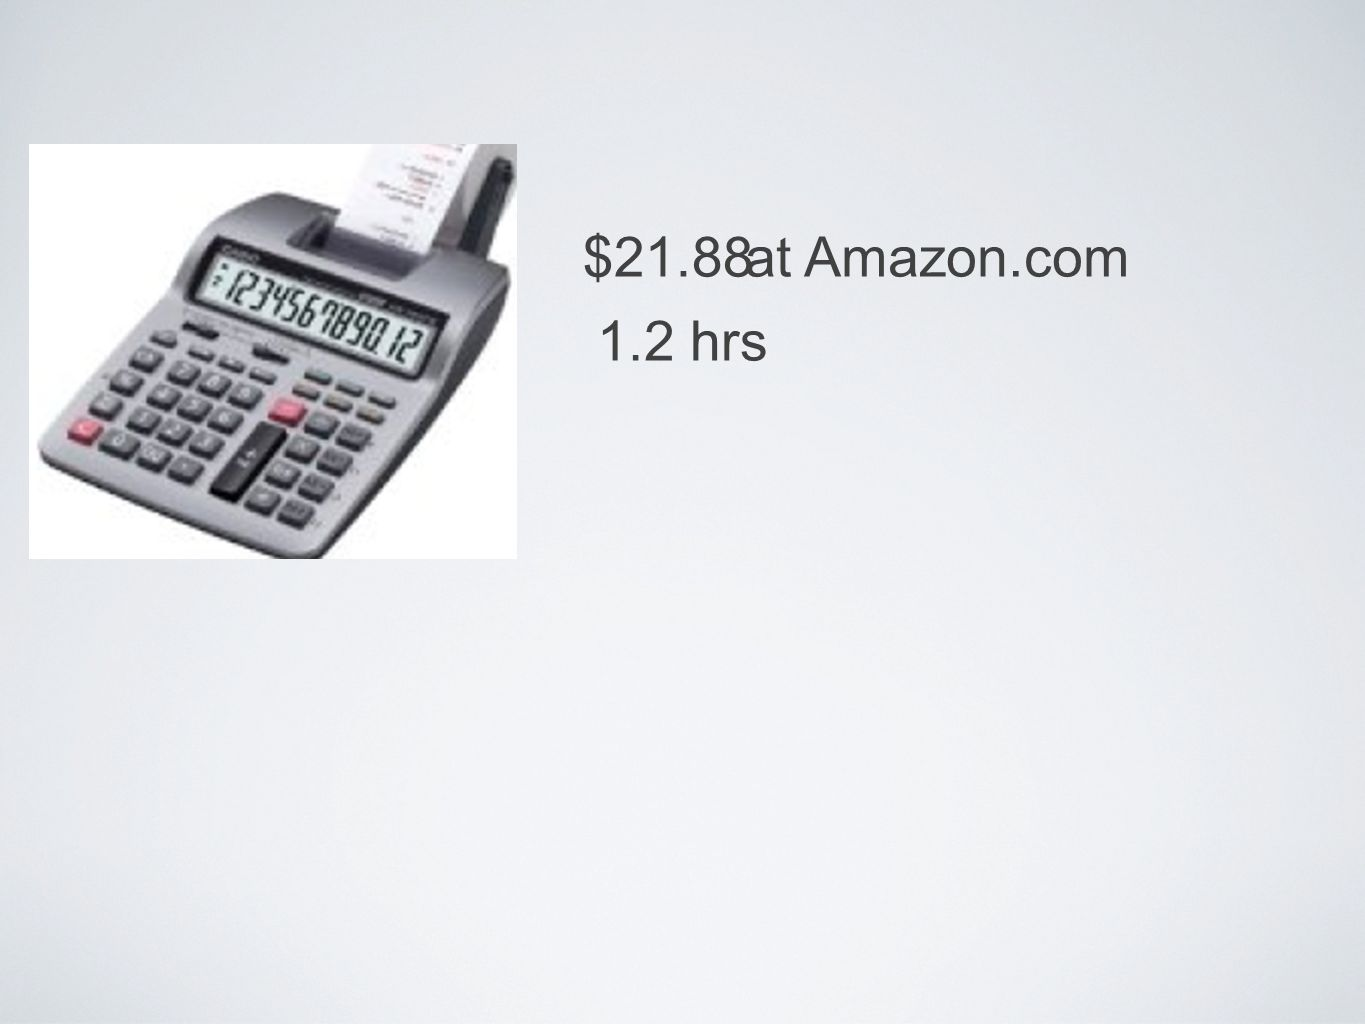 $21.88 1.2 hrs at Amazon.com